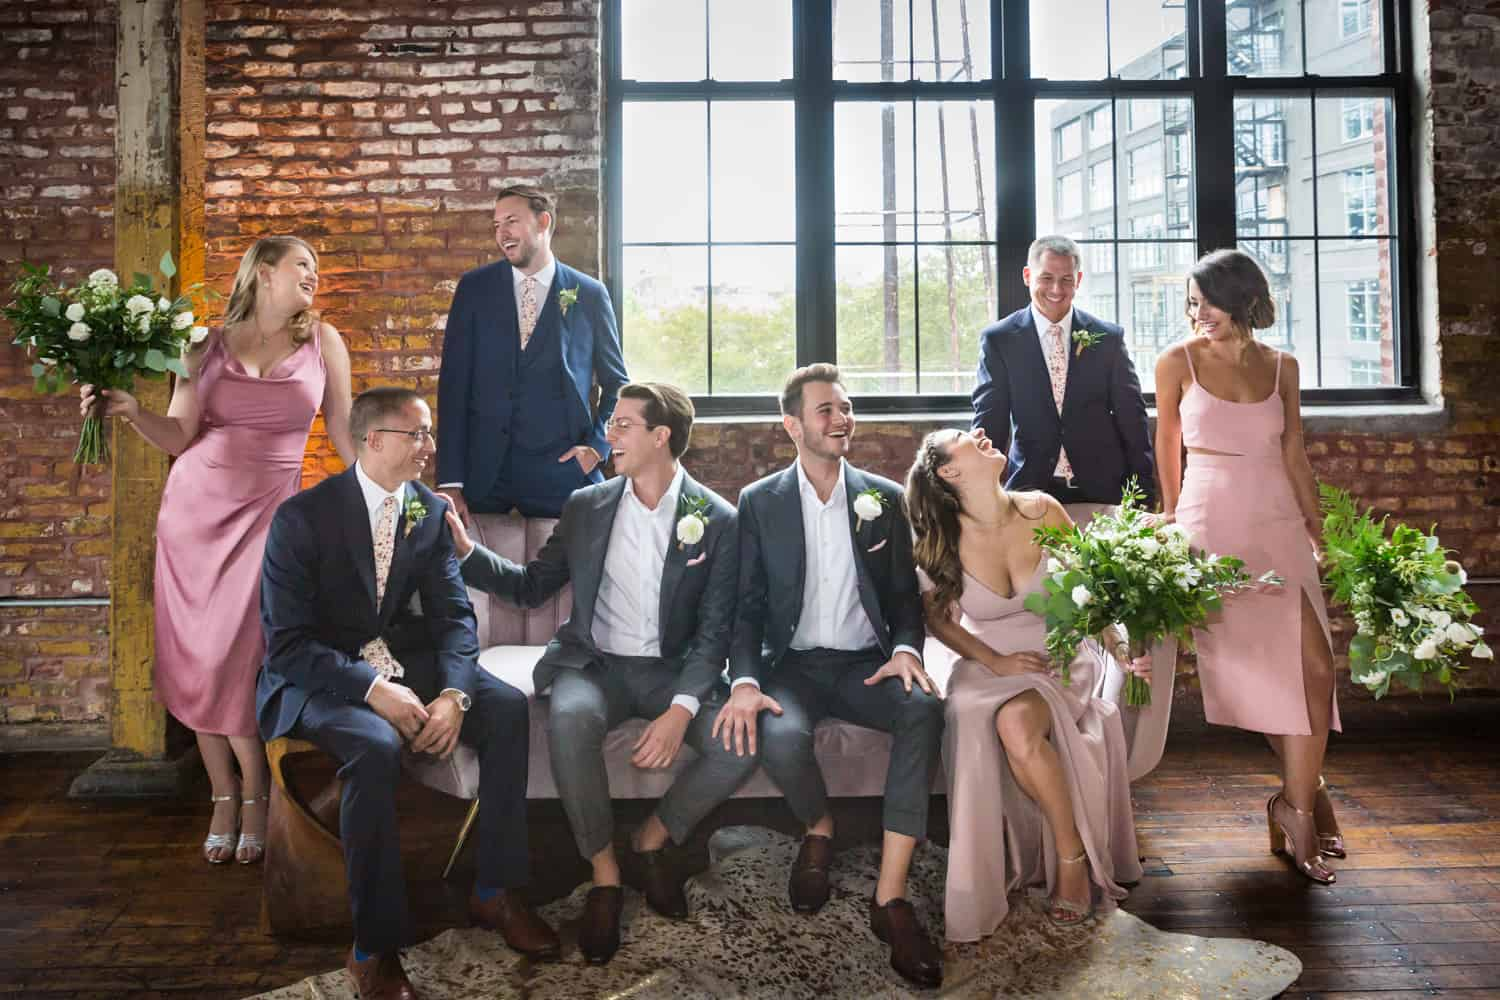 Greenpoint Loft wedding photos of bridal party lounging over couch with window in background